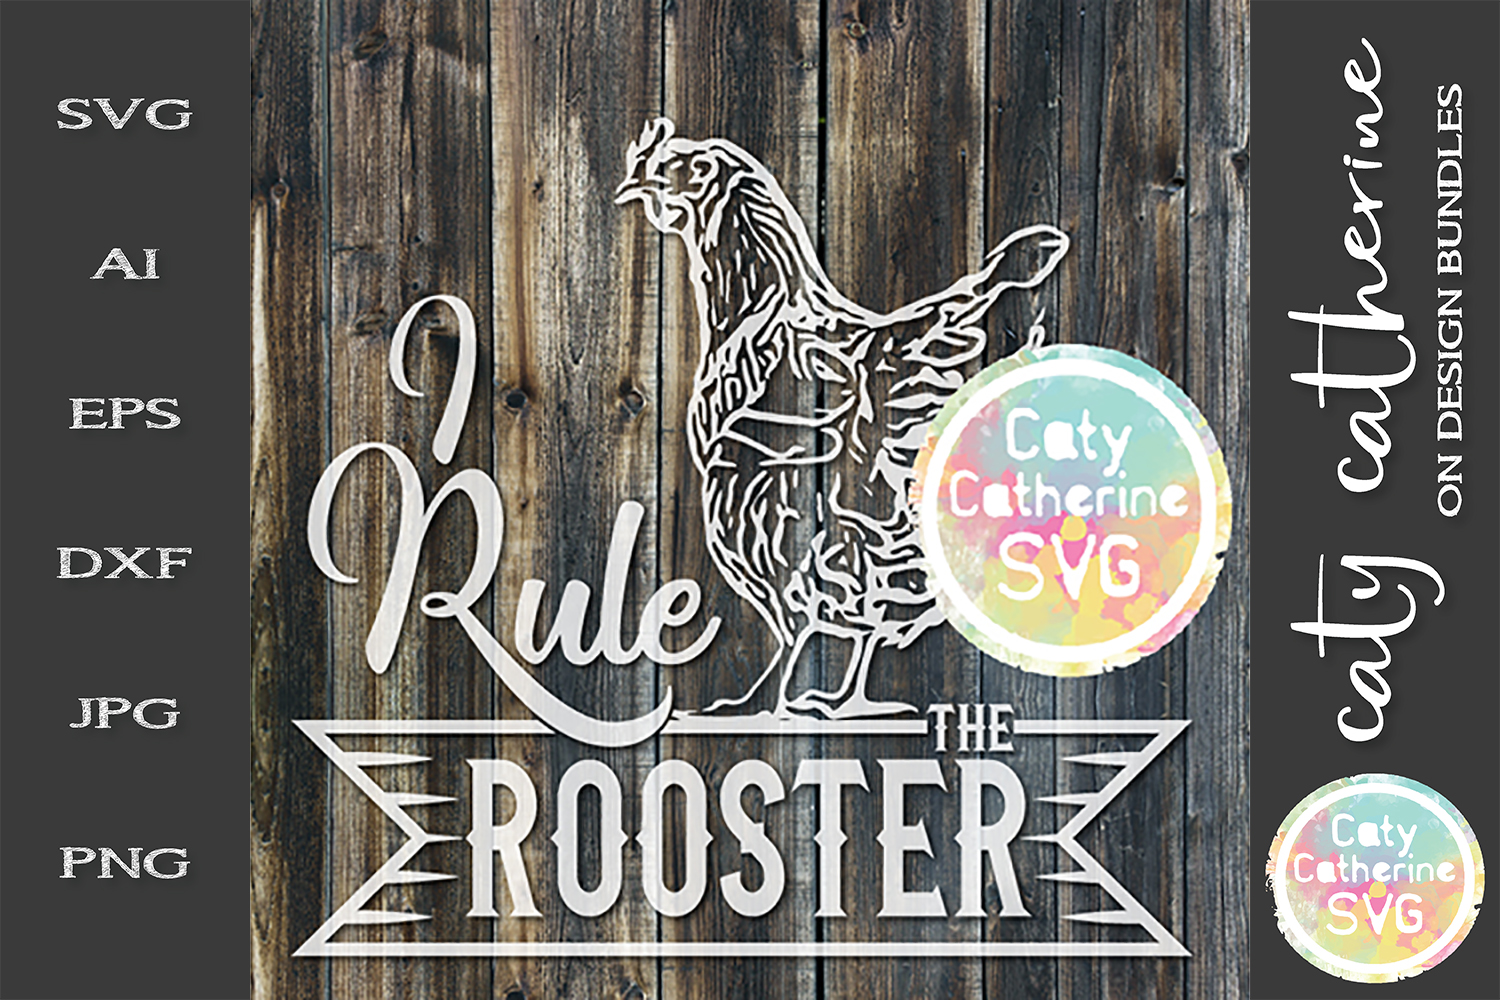 I Rule The Roost I Rule The Rooster Couples Matching SVG example image 2